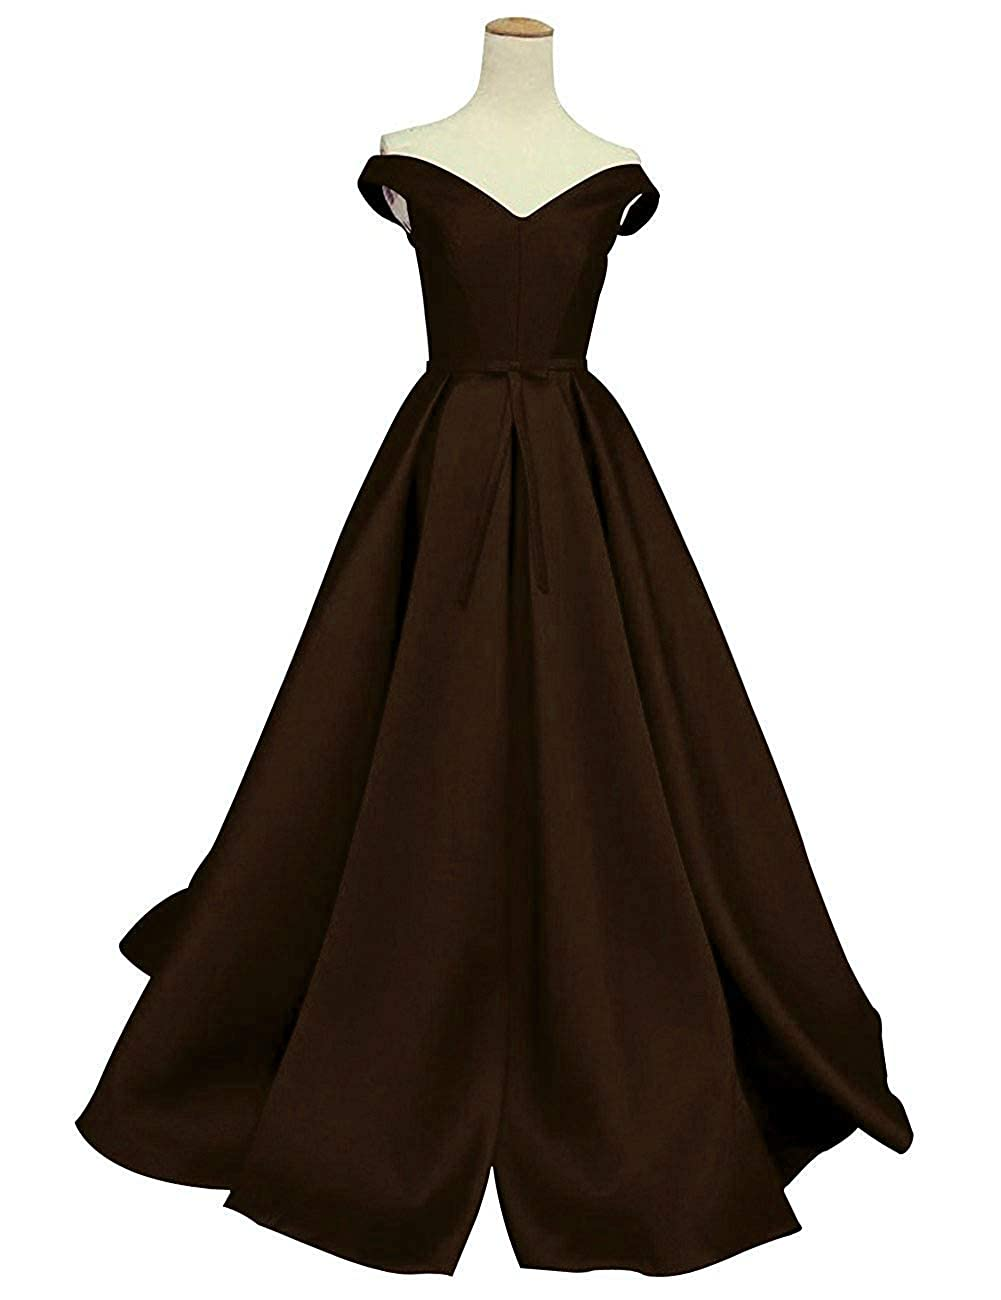 Chocolate DreamSkirts Women's Off The Shoulder ALine Evening Ball Gowns with Bow